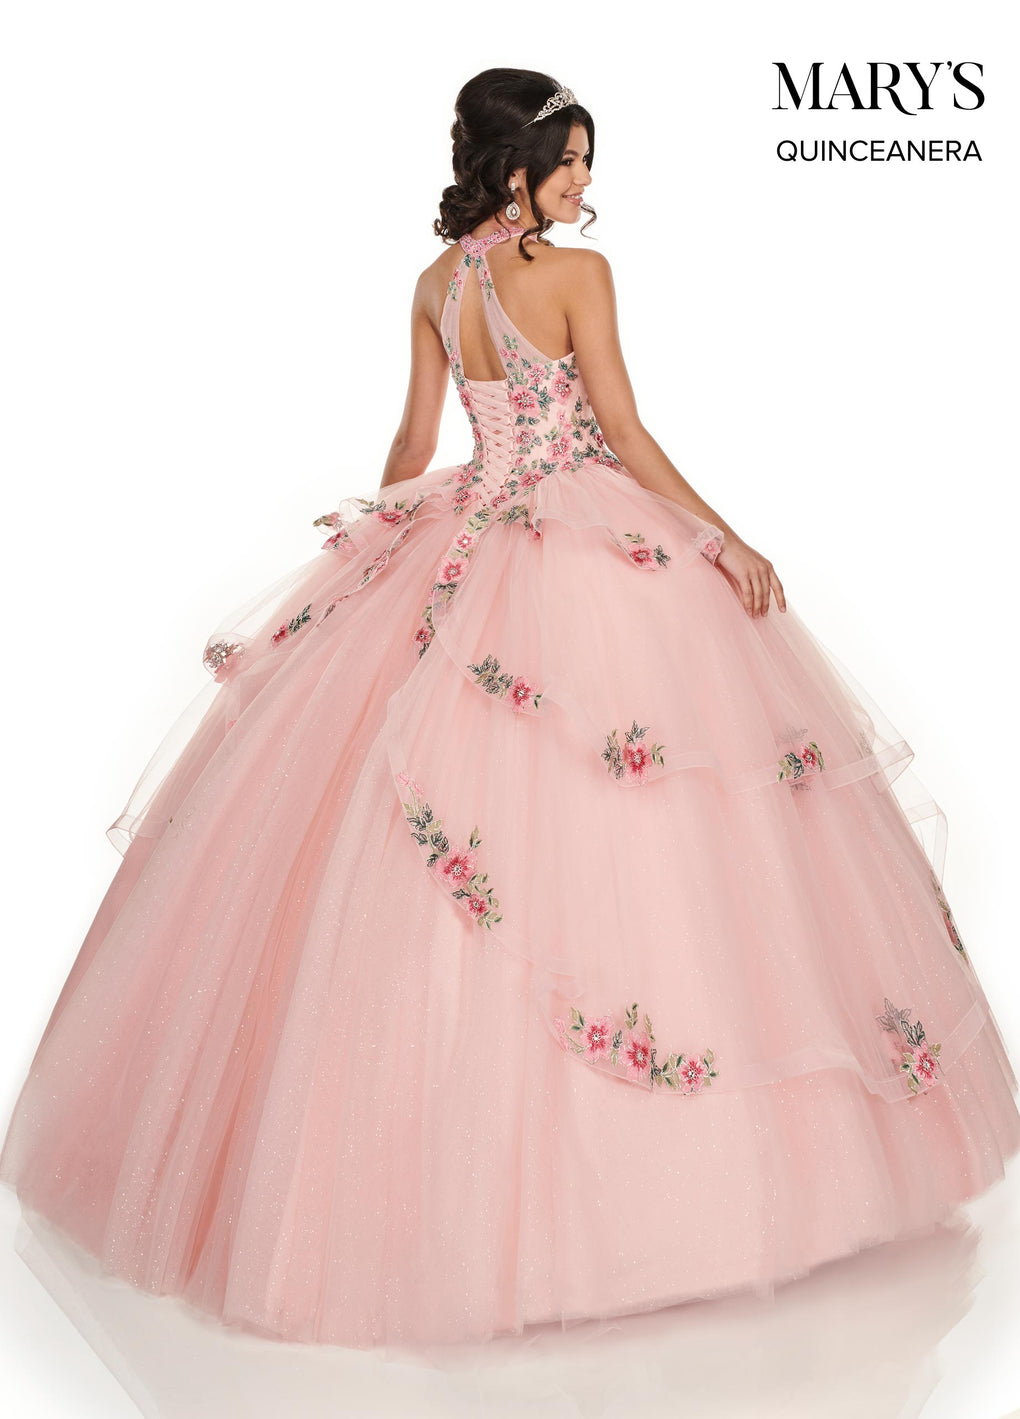 Marys Quinceanera Dresses in Baby Pink/Multi or Lilac Color